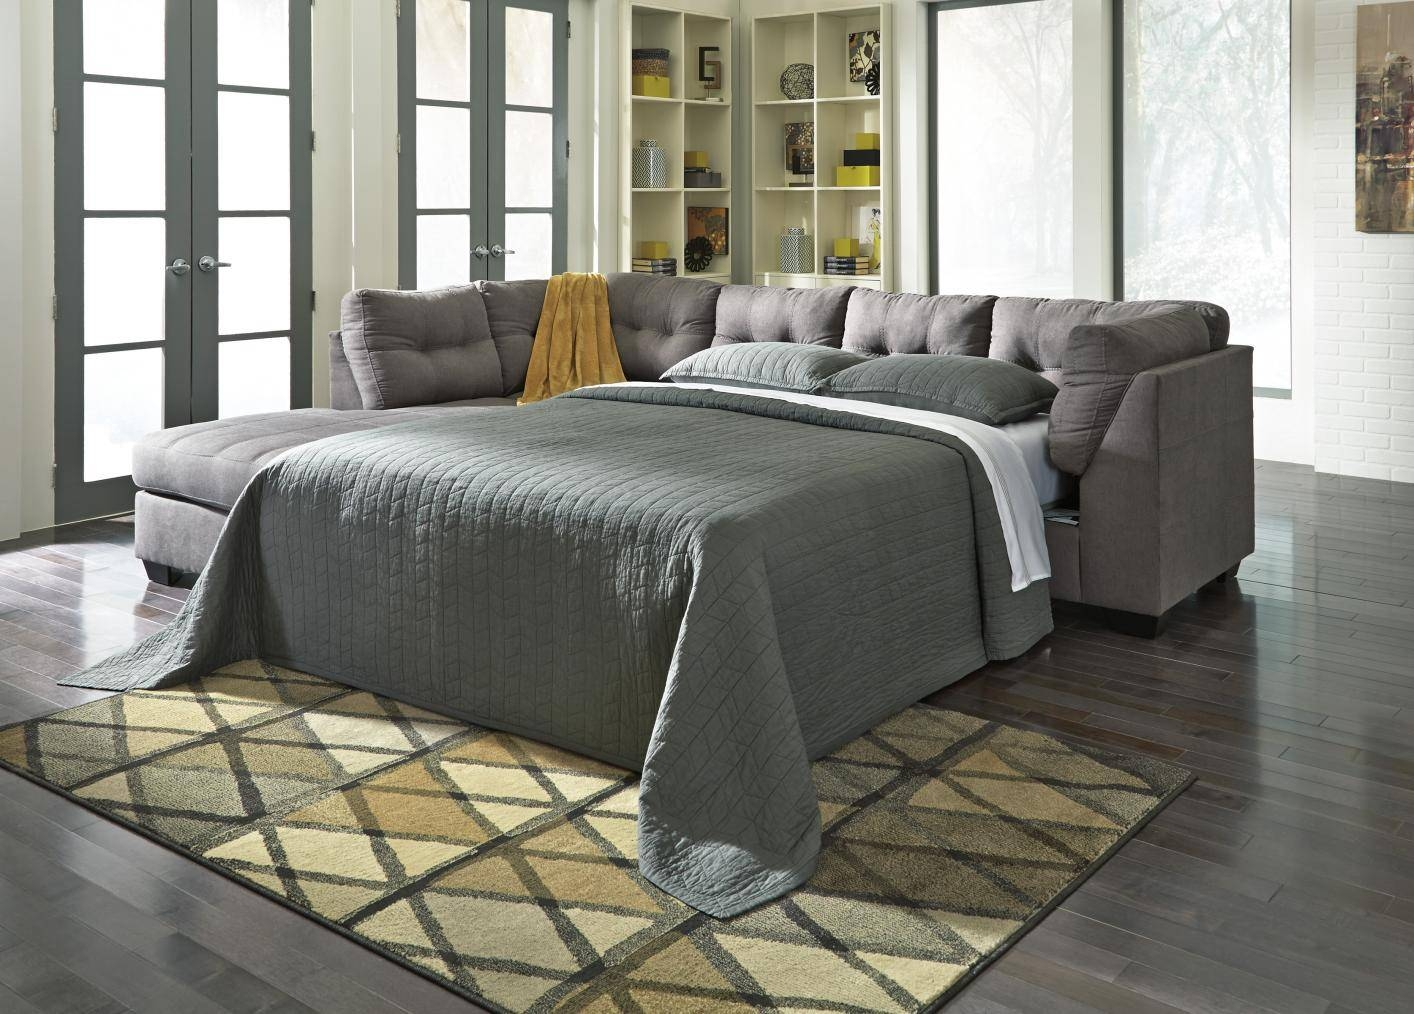 Maier Grey Fabric Sectional Sleeper Sofa – Steal A Sofa Furniture With Regard To Ashley Tufted Sofa (Image 17 of 30)